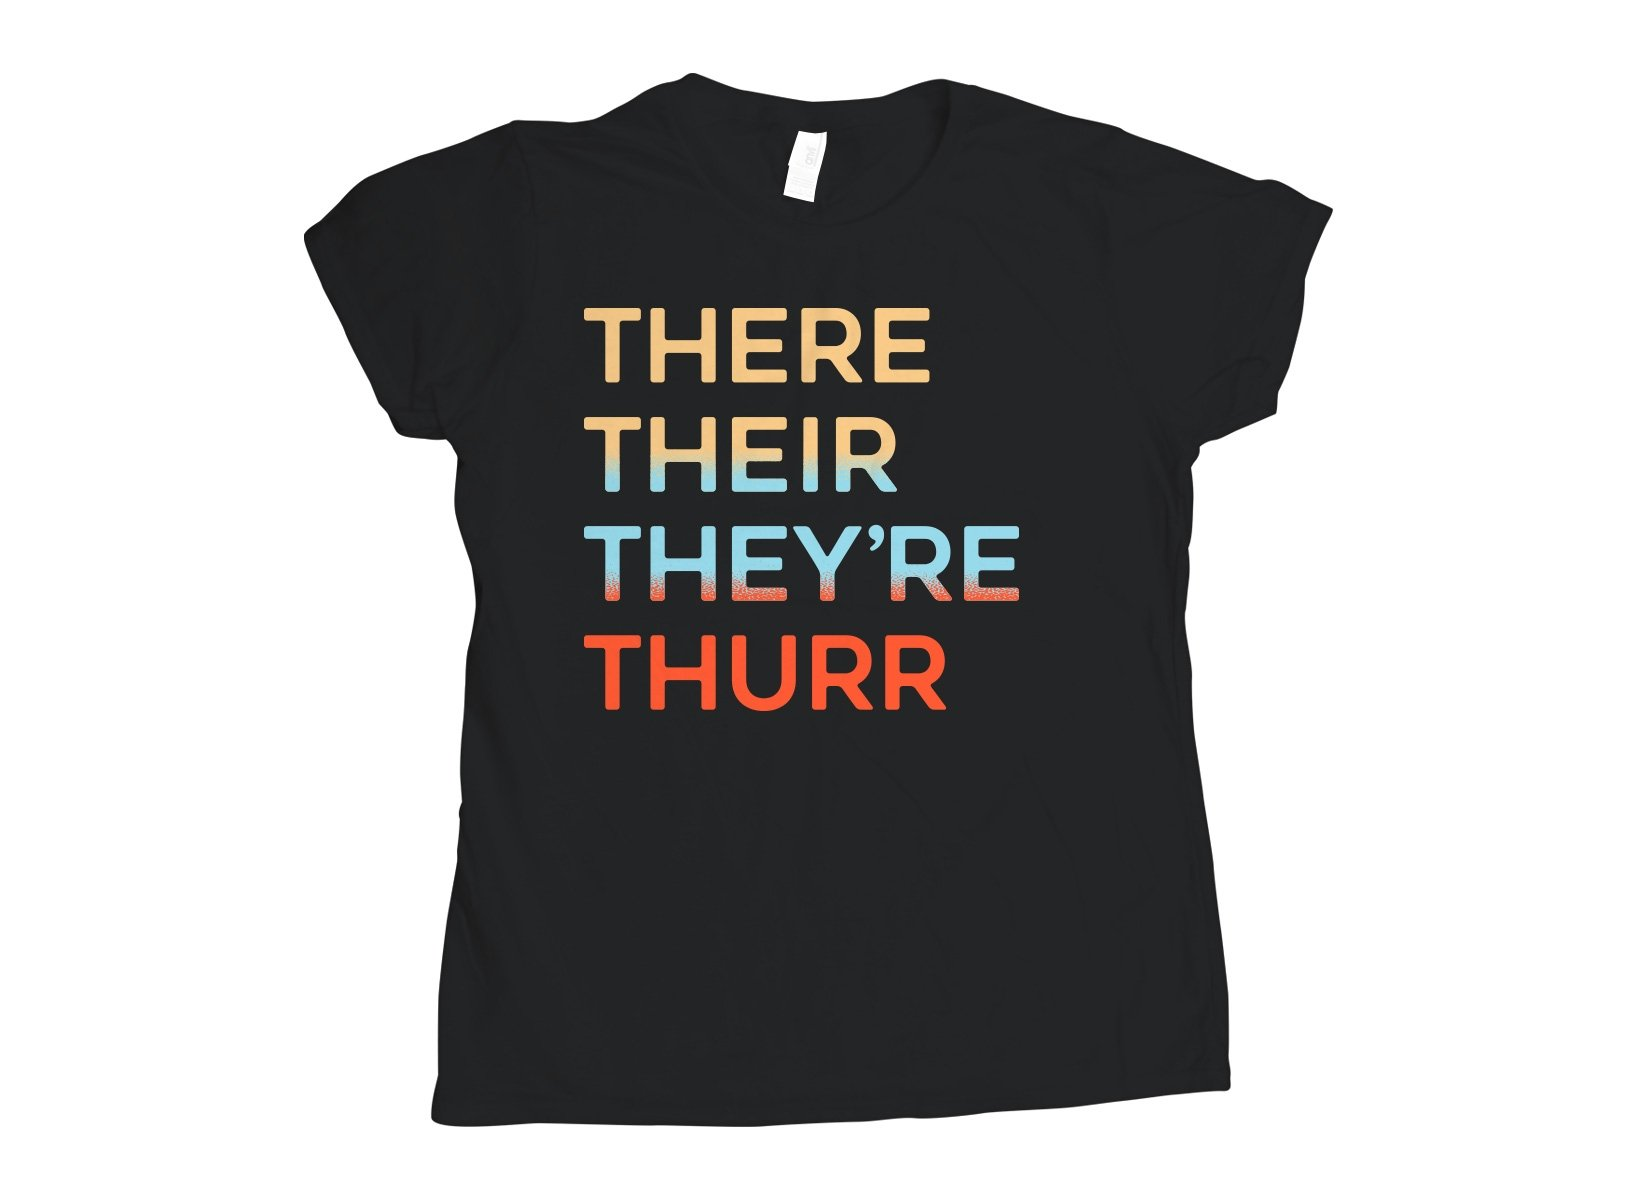 There Their They're Thurr on Womens T-Shirt